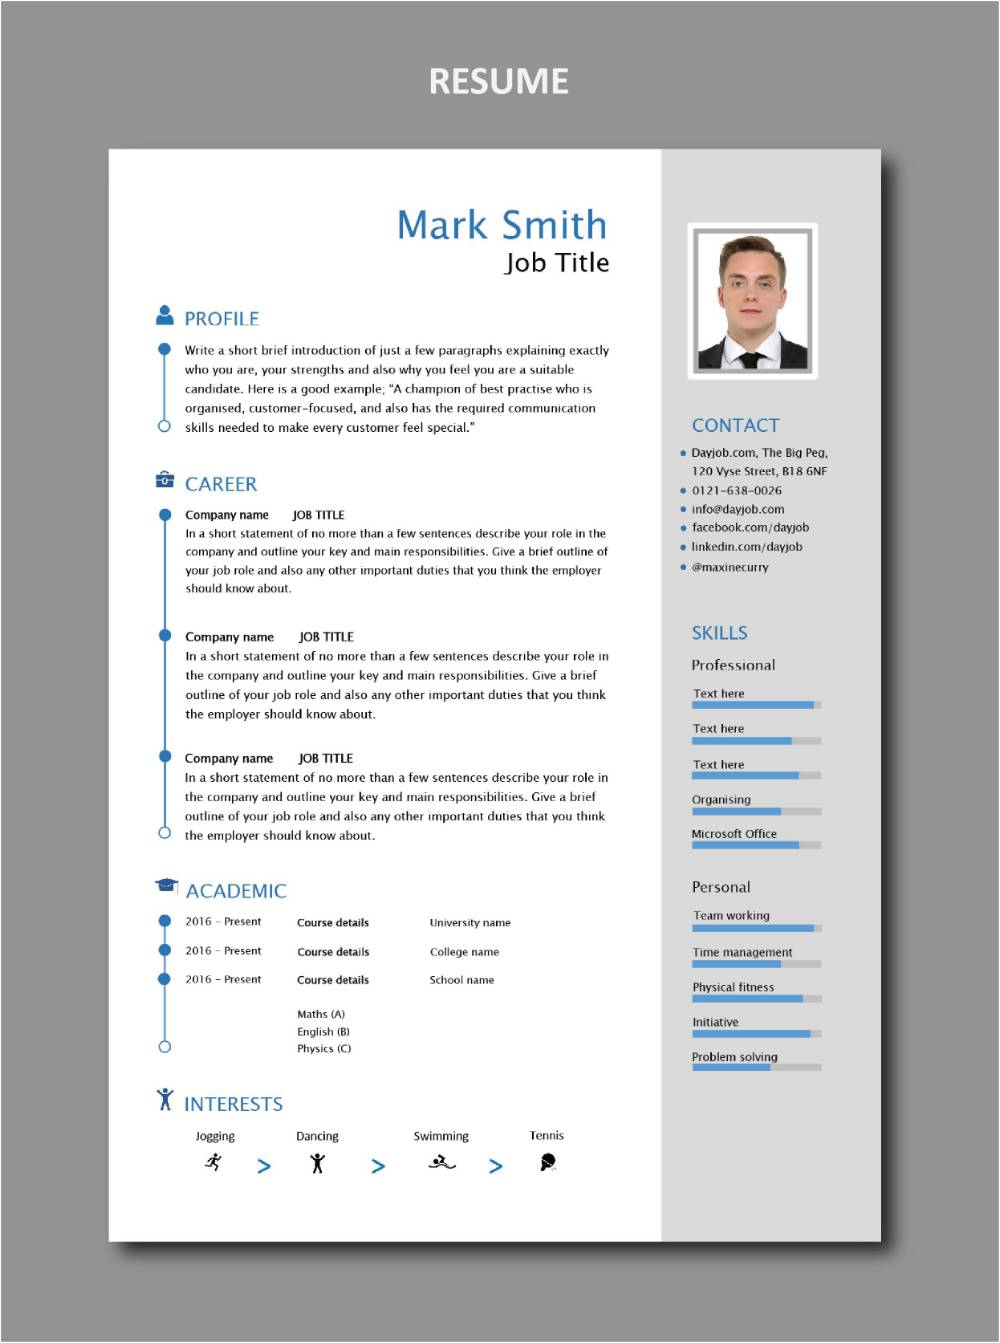 modern resume template get invited to job interview career work format for pic sep master Resume Resume Format For Job Interview